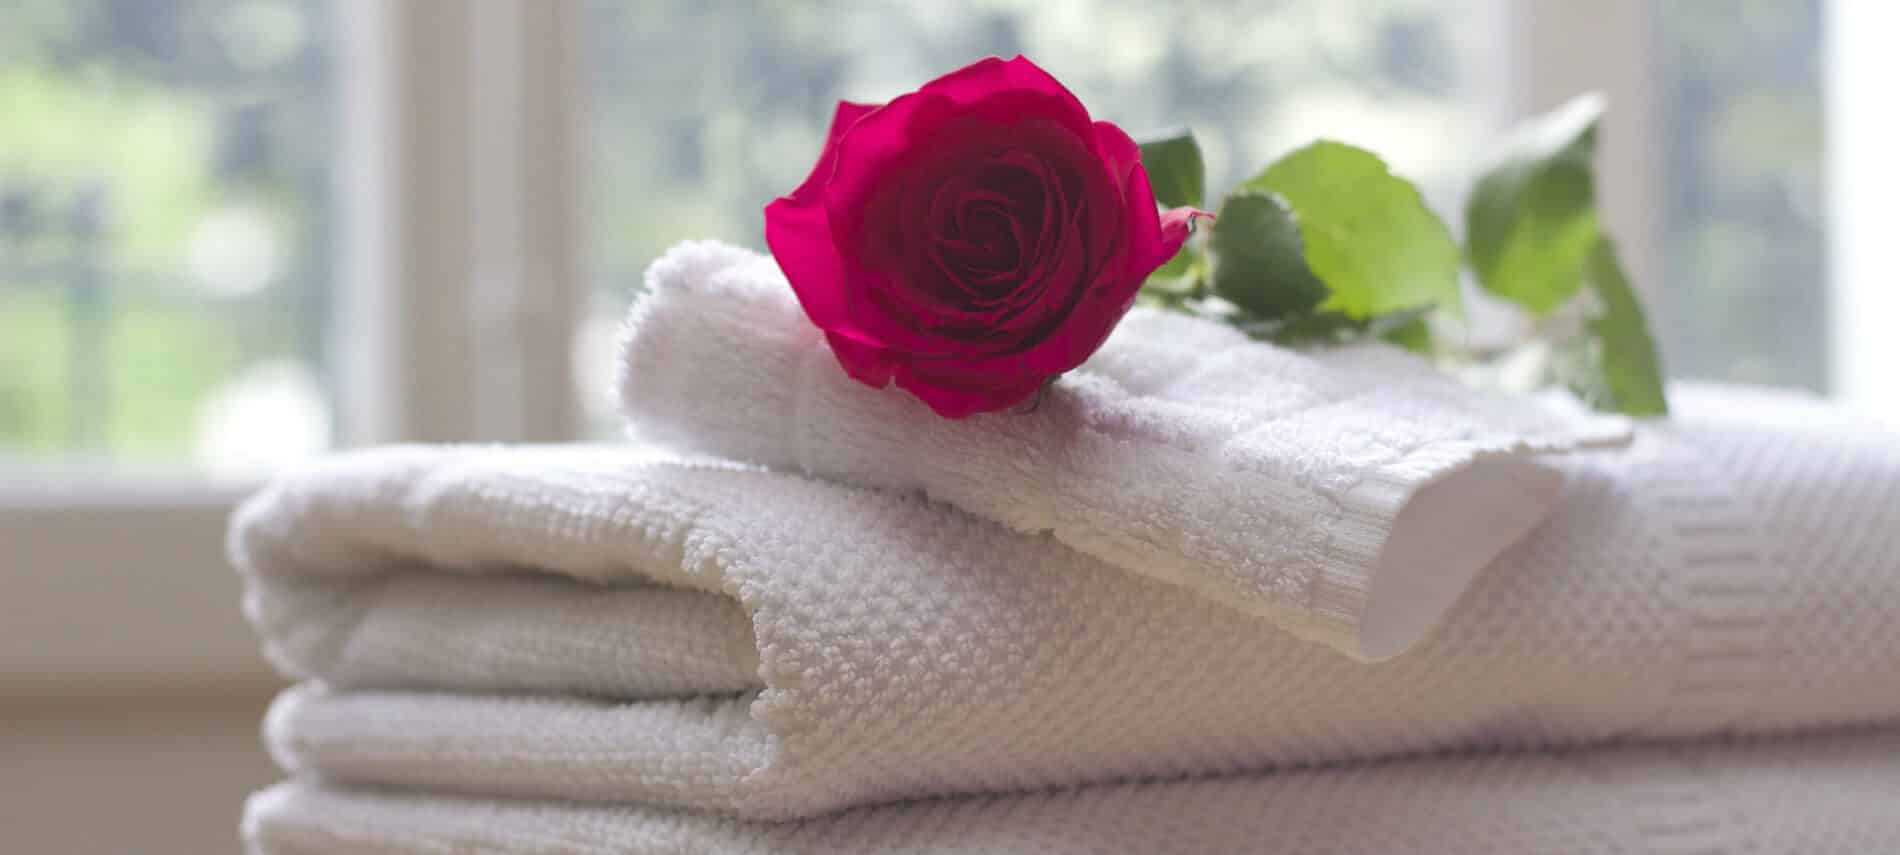 A red rose in fluu bloom rests on a pile of clean white folded towels.